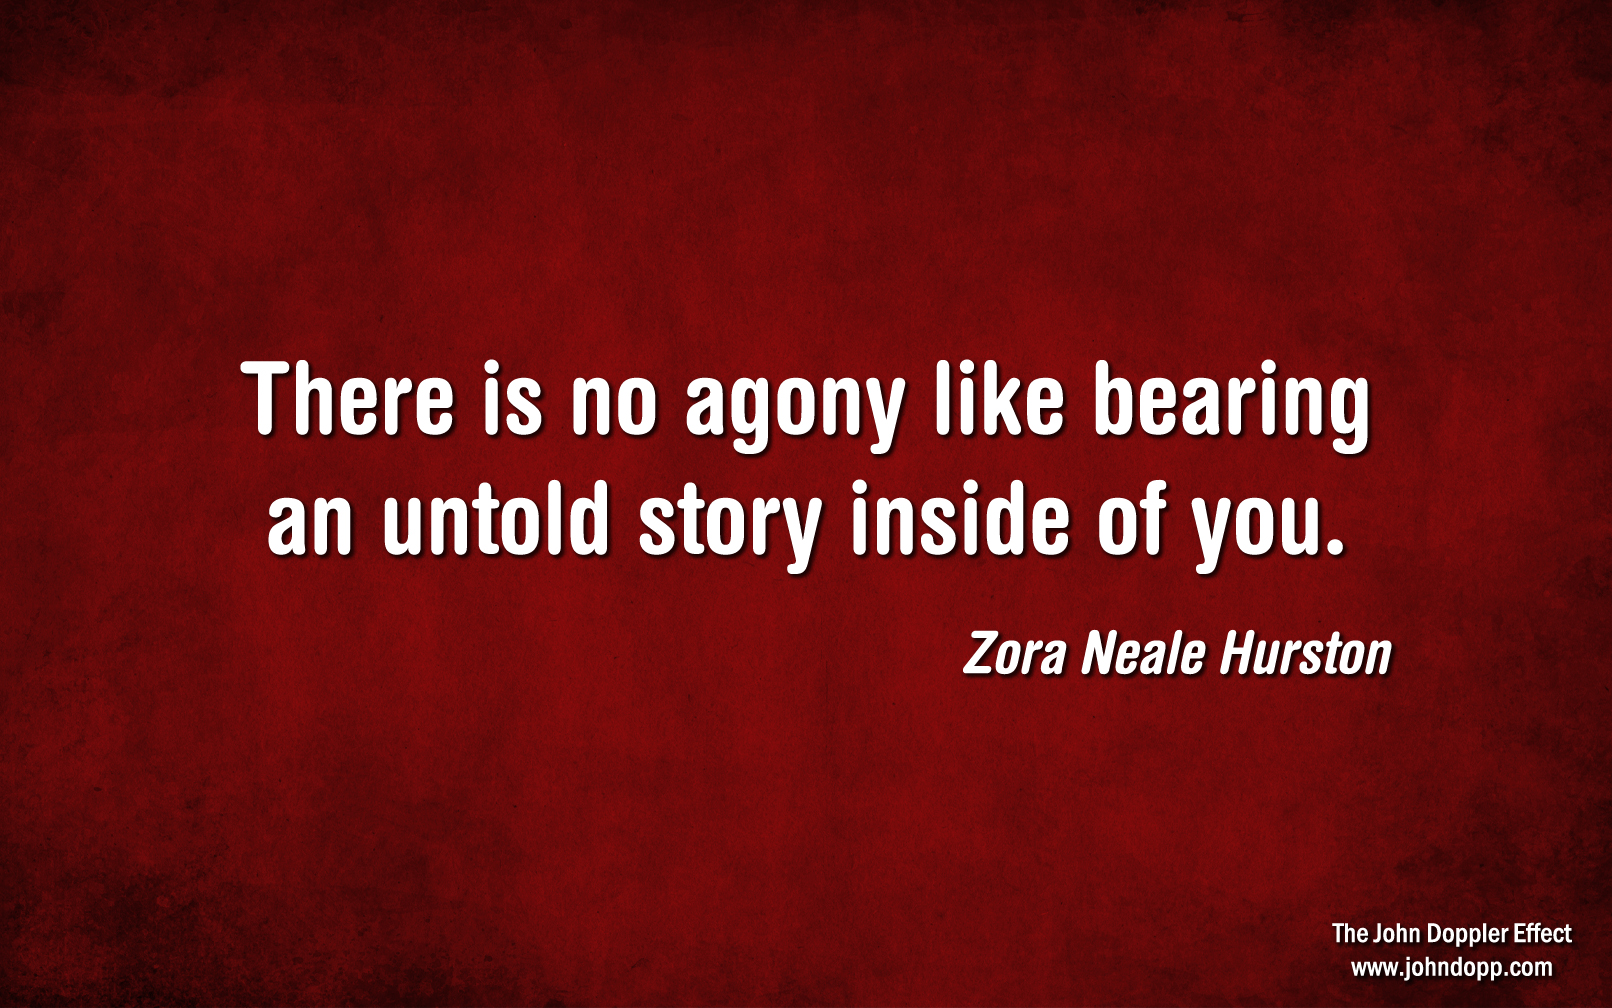 Quotes About Love By Zora Neale Hurston : Zora Neale Hurston Quotes Tumblr Zora neale hurston